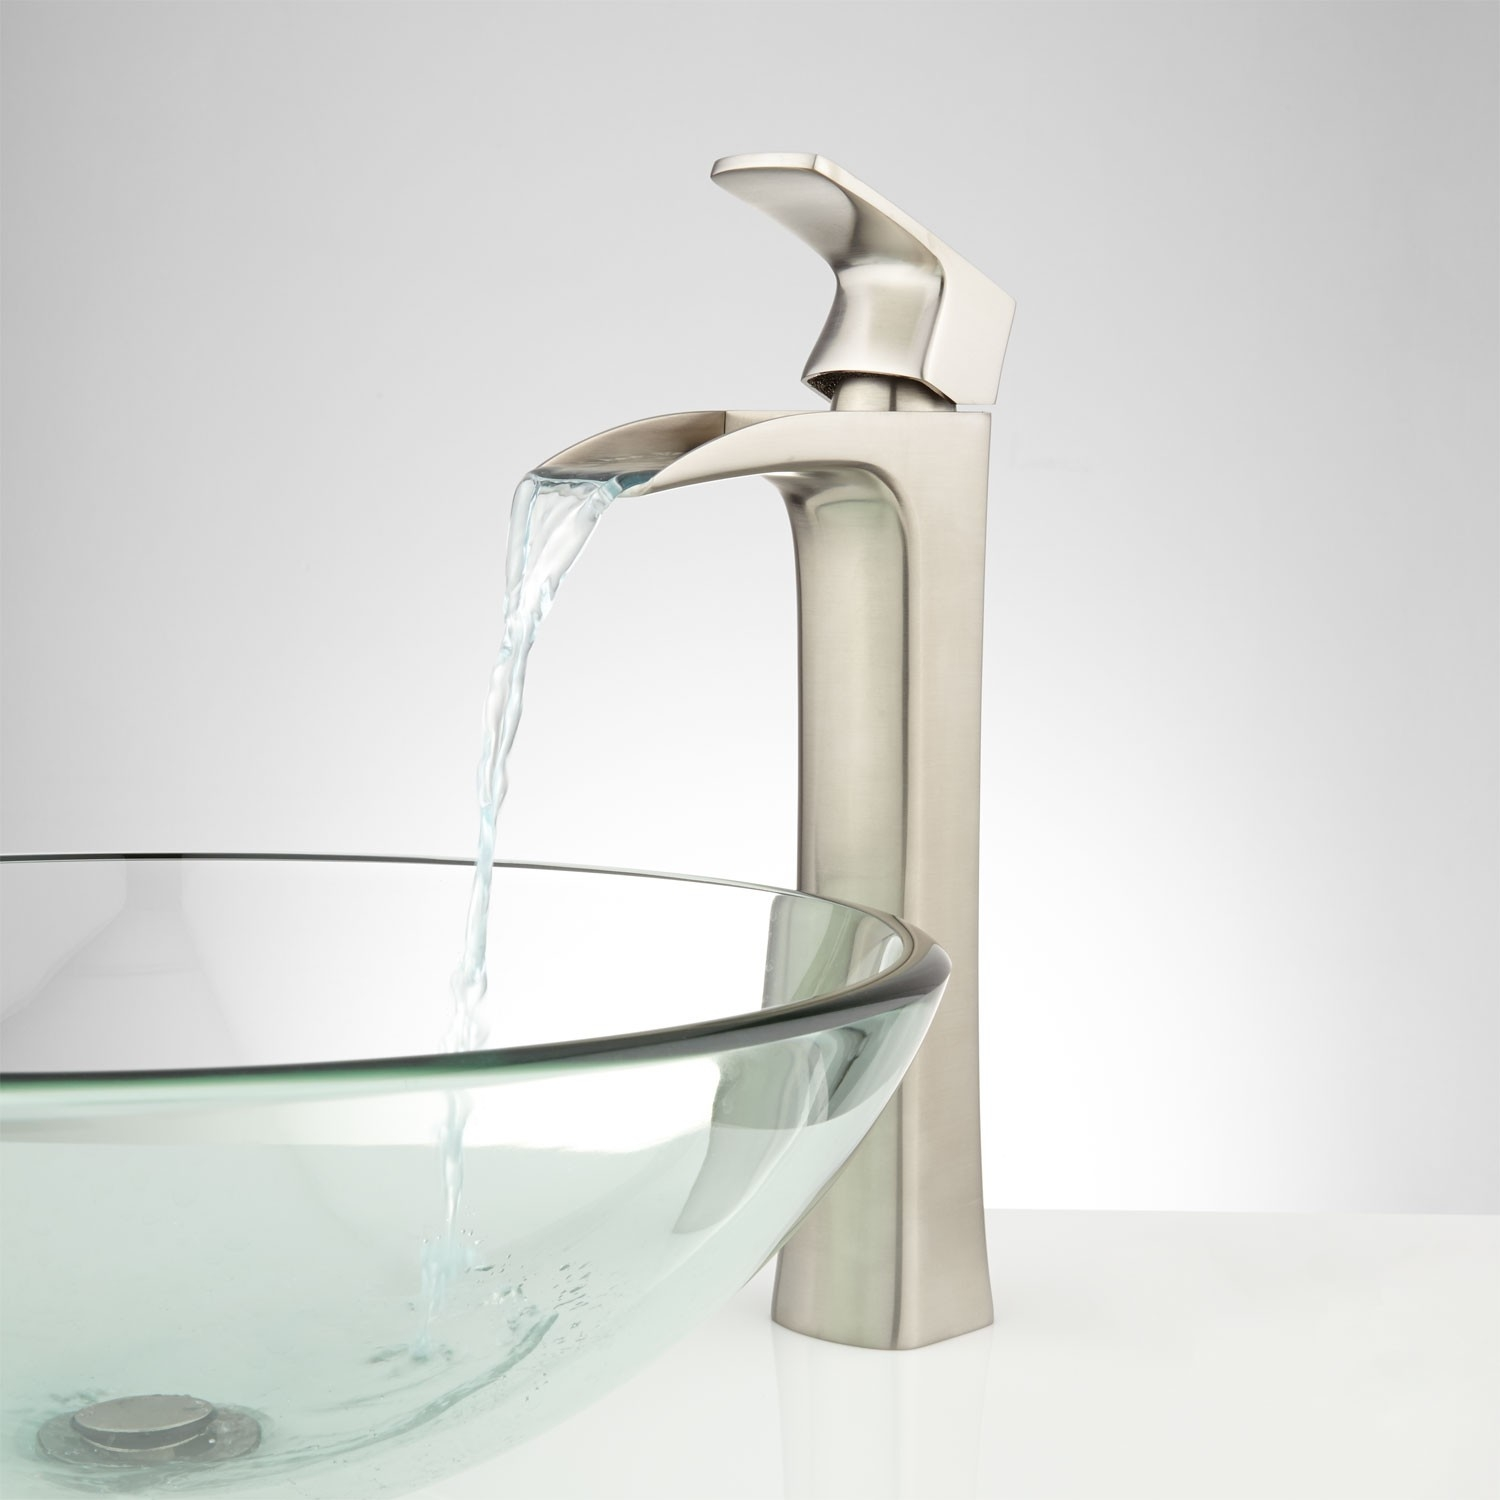 Ideas, bathroom faucets lavatory faucets signature hardware pertaining to proportions 1500 x 1500  .